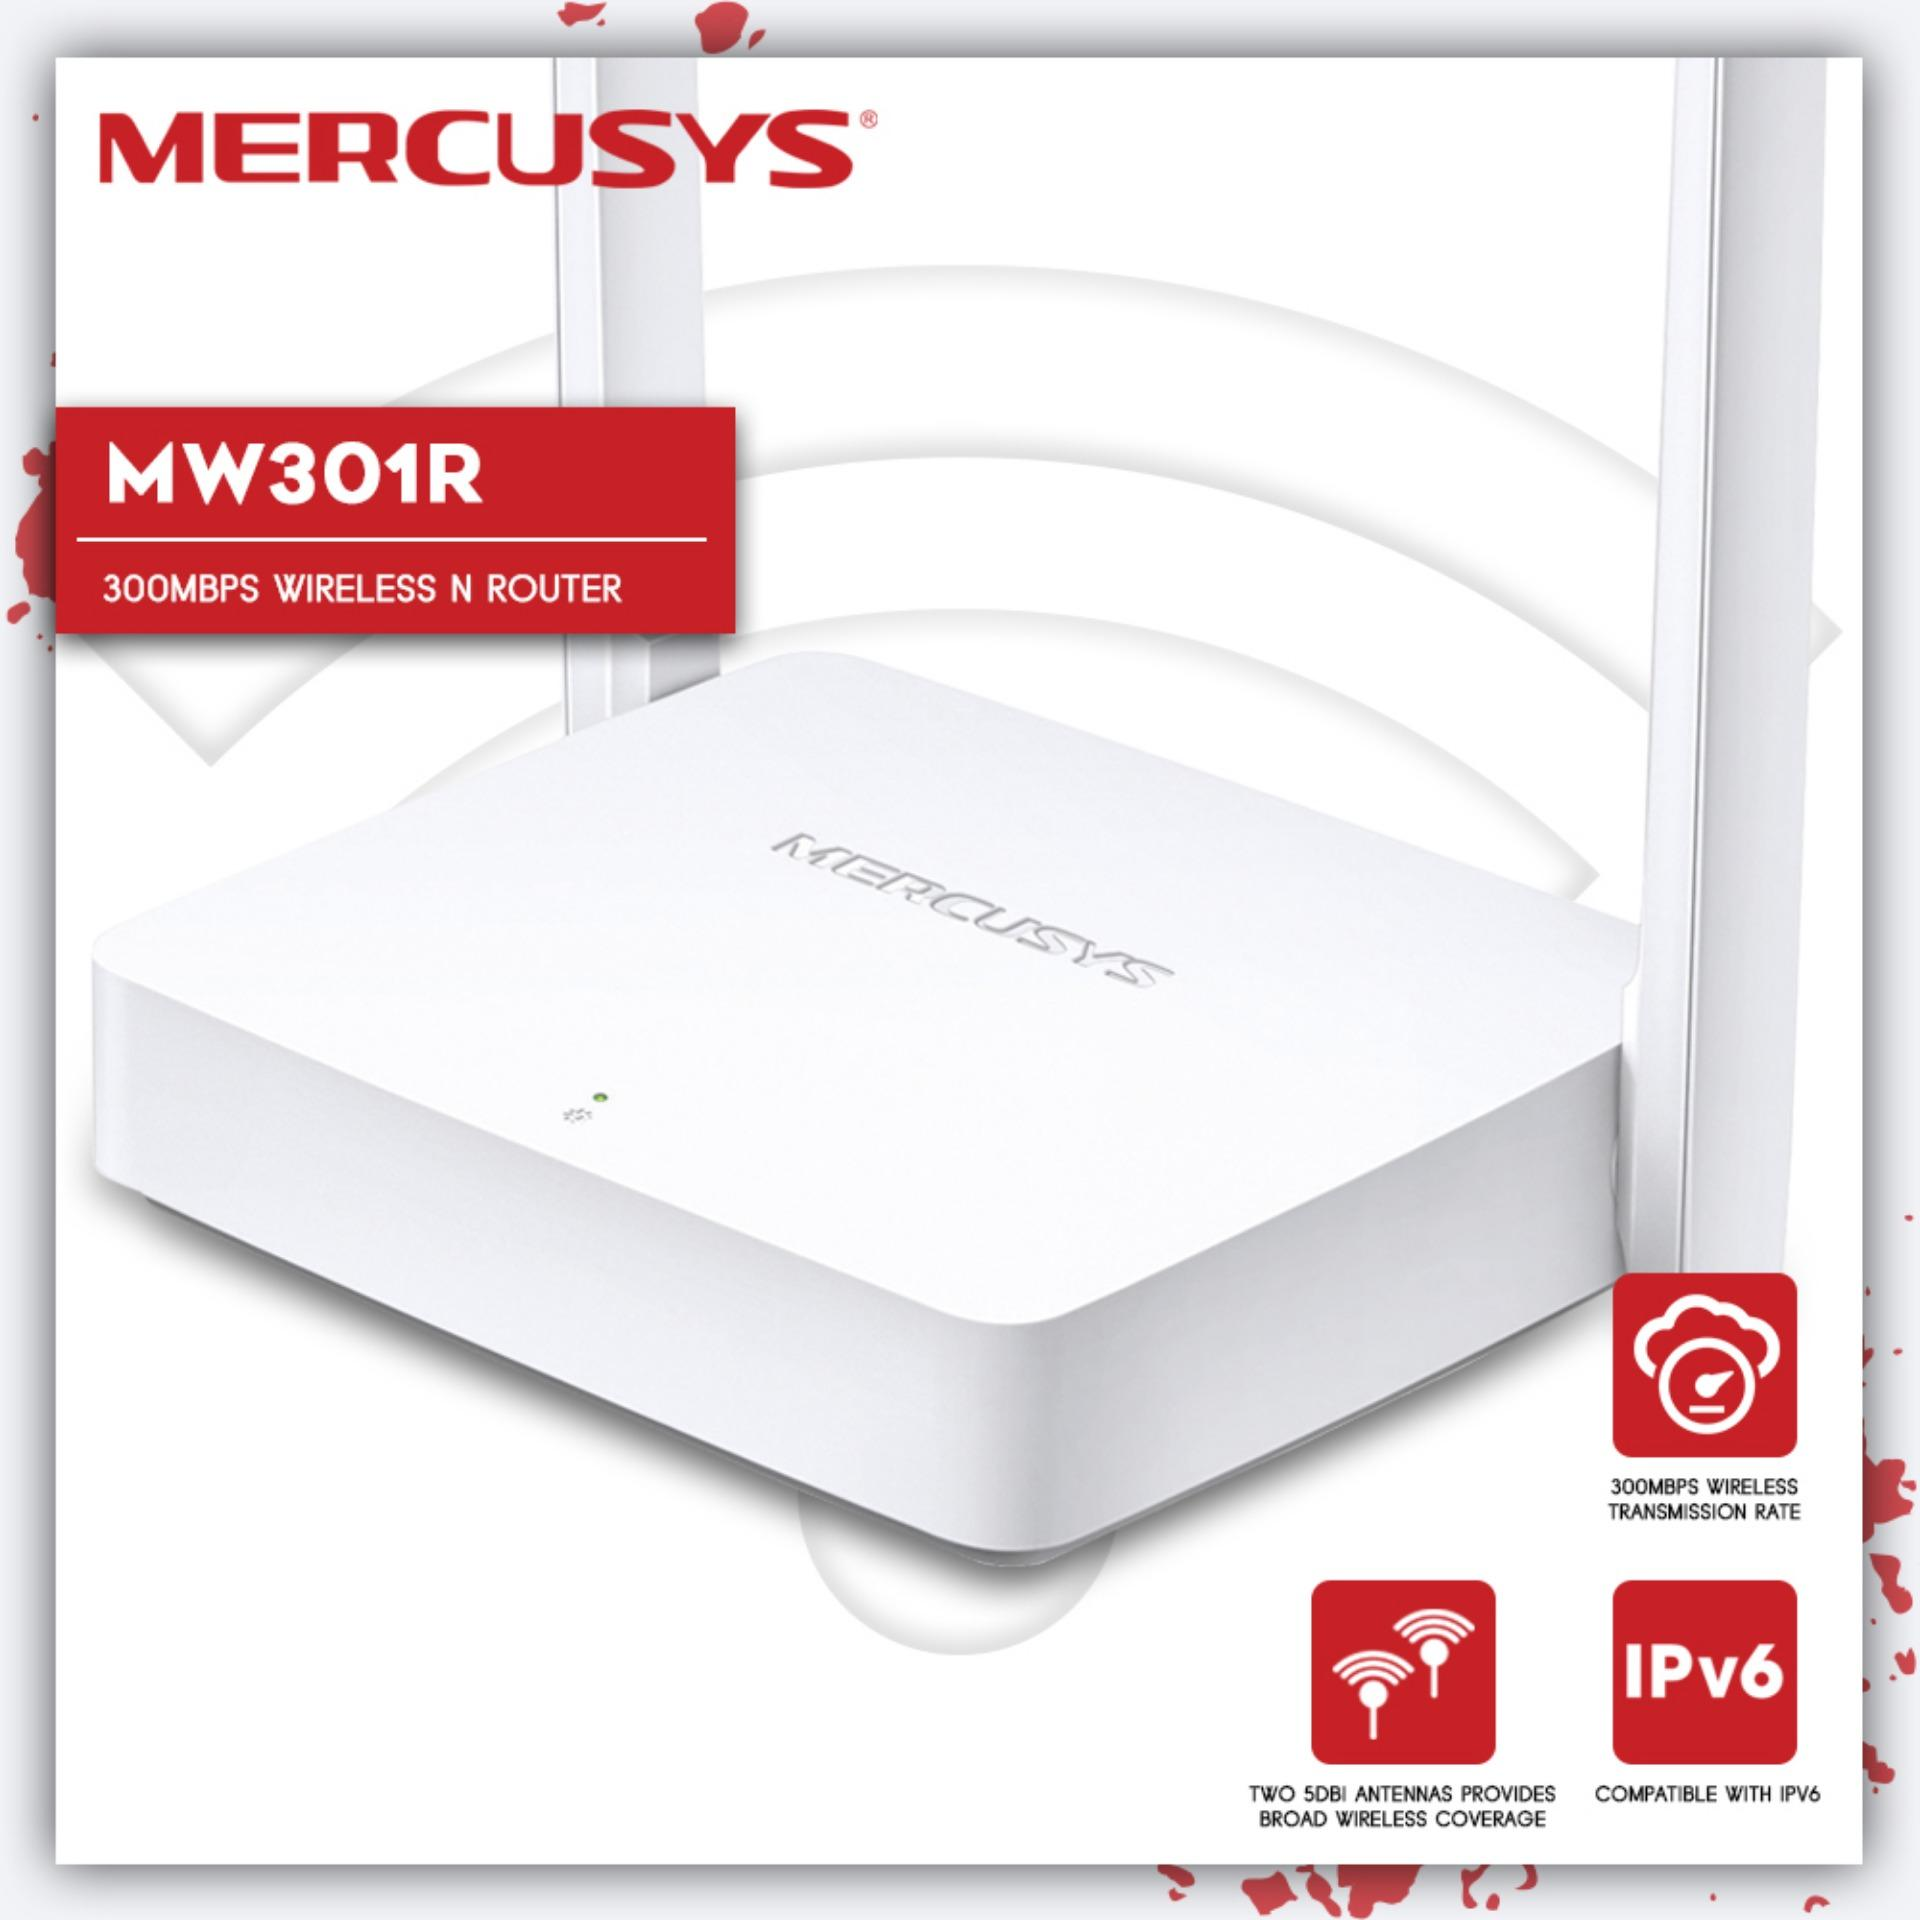 TP-Link Mercusys MW301R 300Mbps Wireless N Router Two 5dBi Antennas